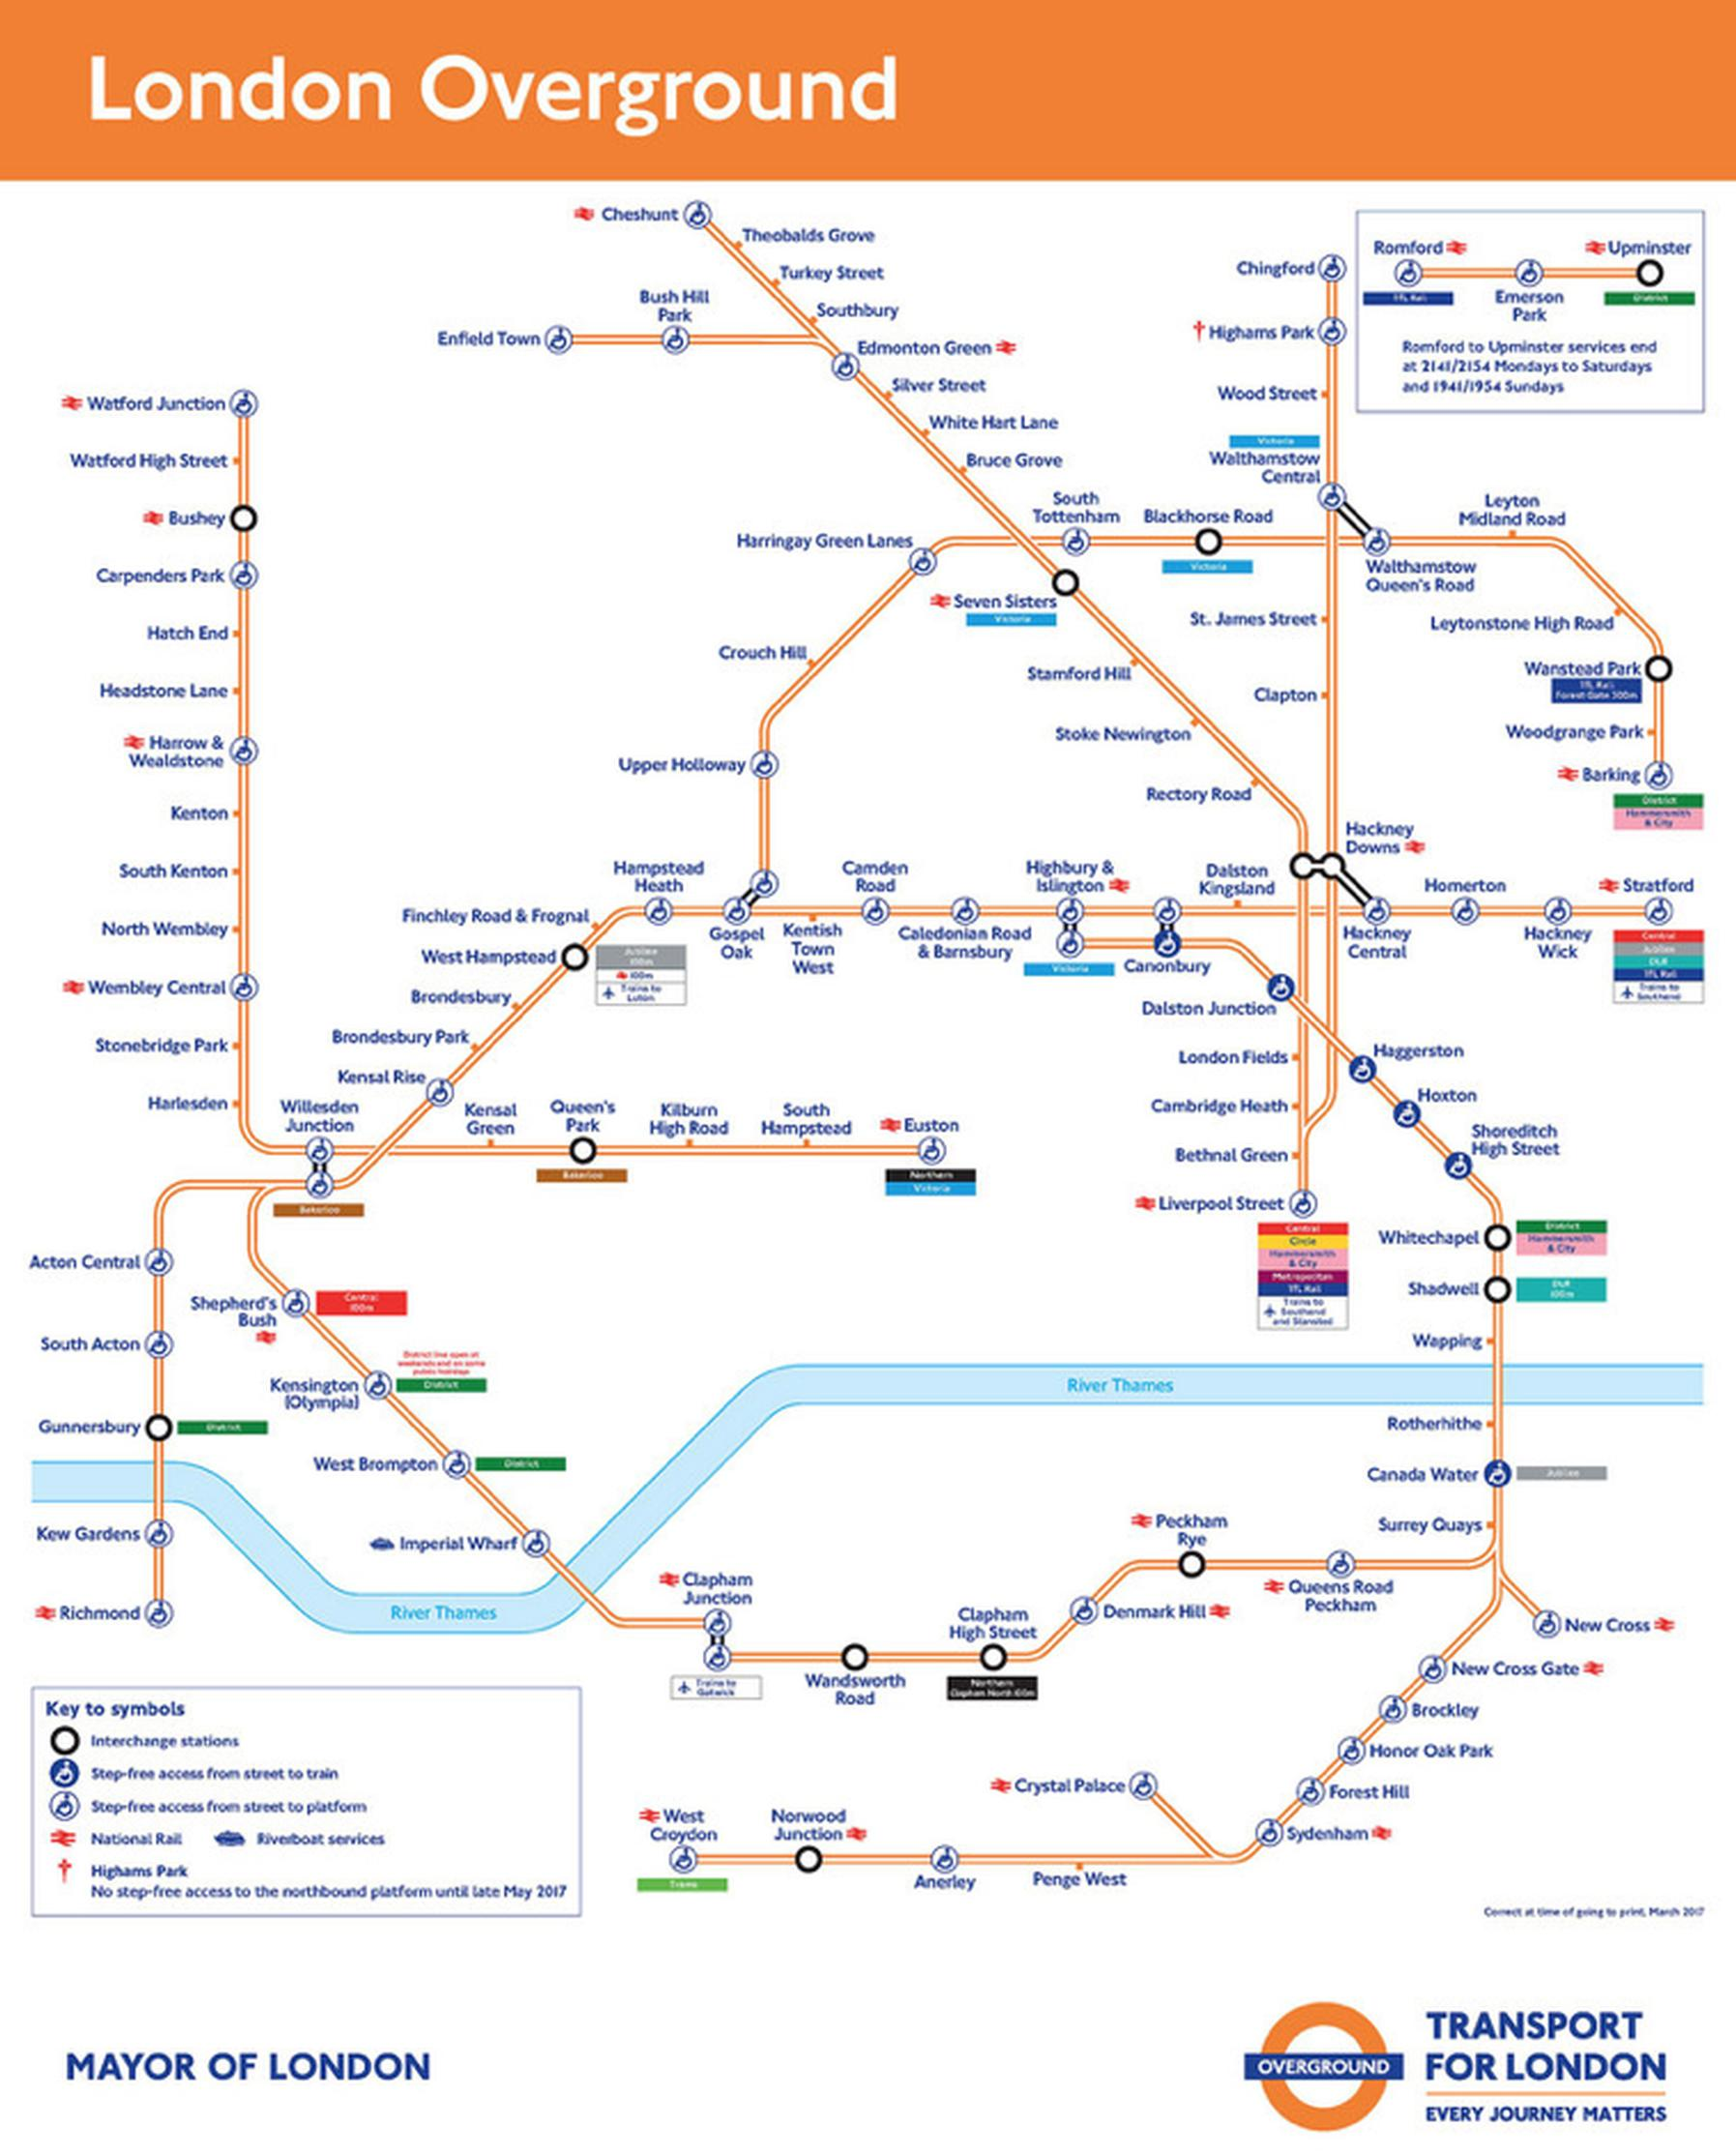 The London Overground network in 2017